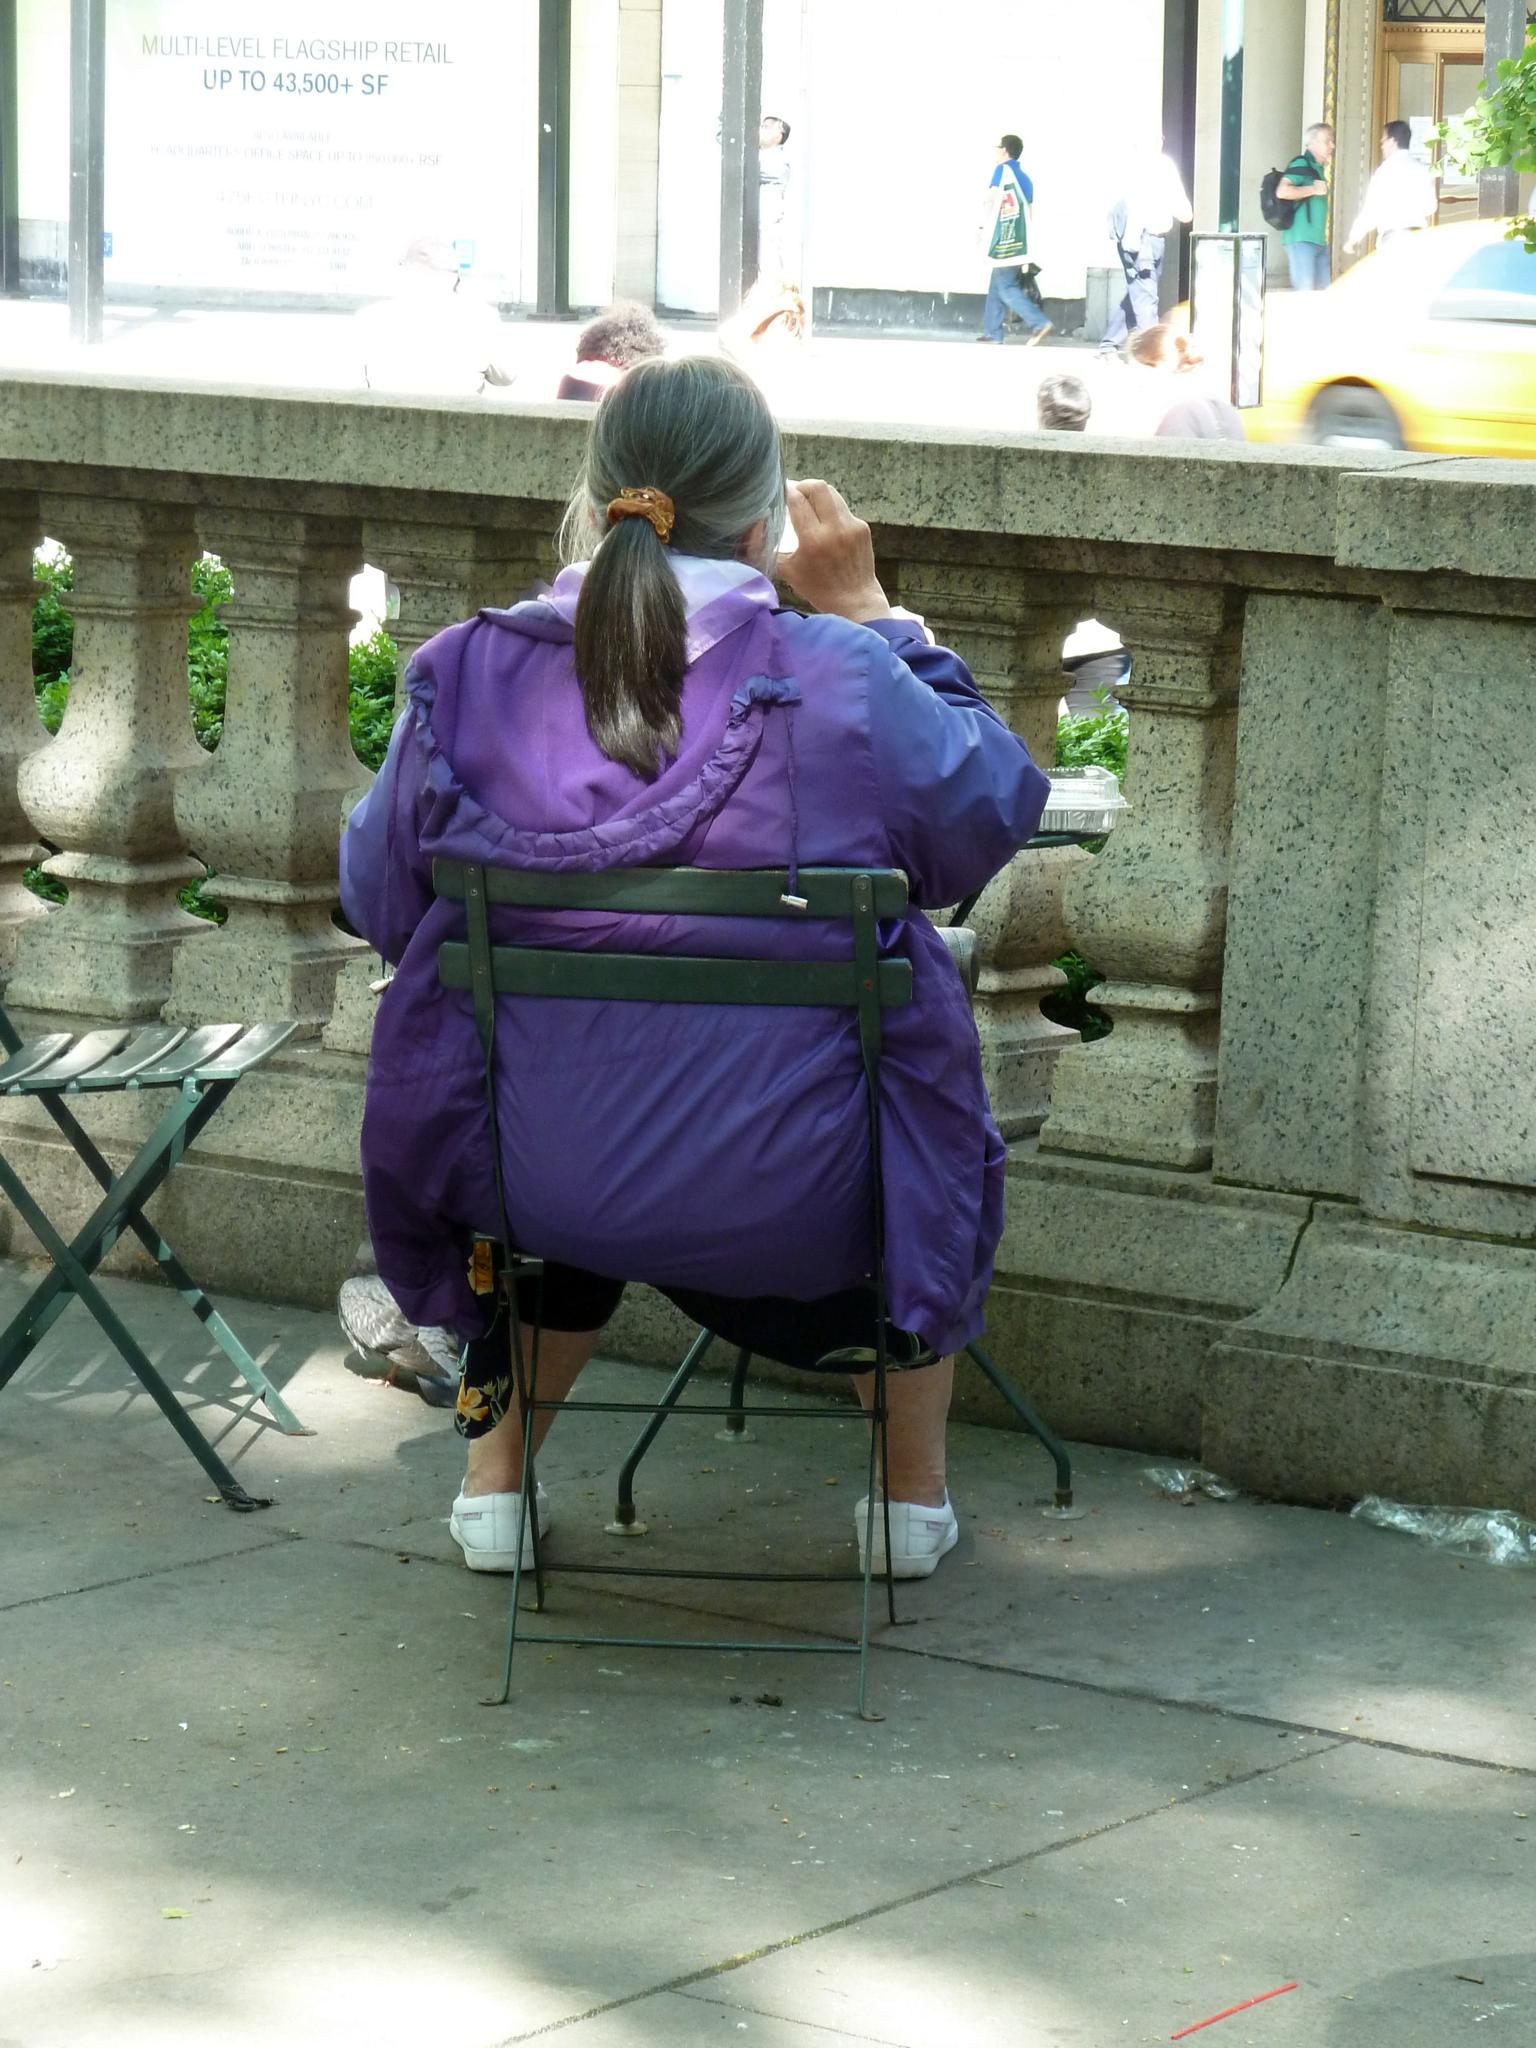 Tourist taking a break on a hot day in May. Bryant Park, NYC Public Library. by Anton Agalbato